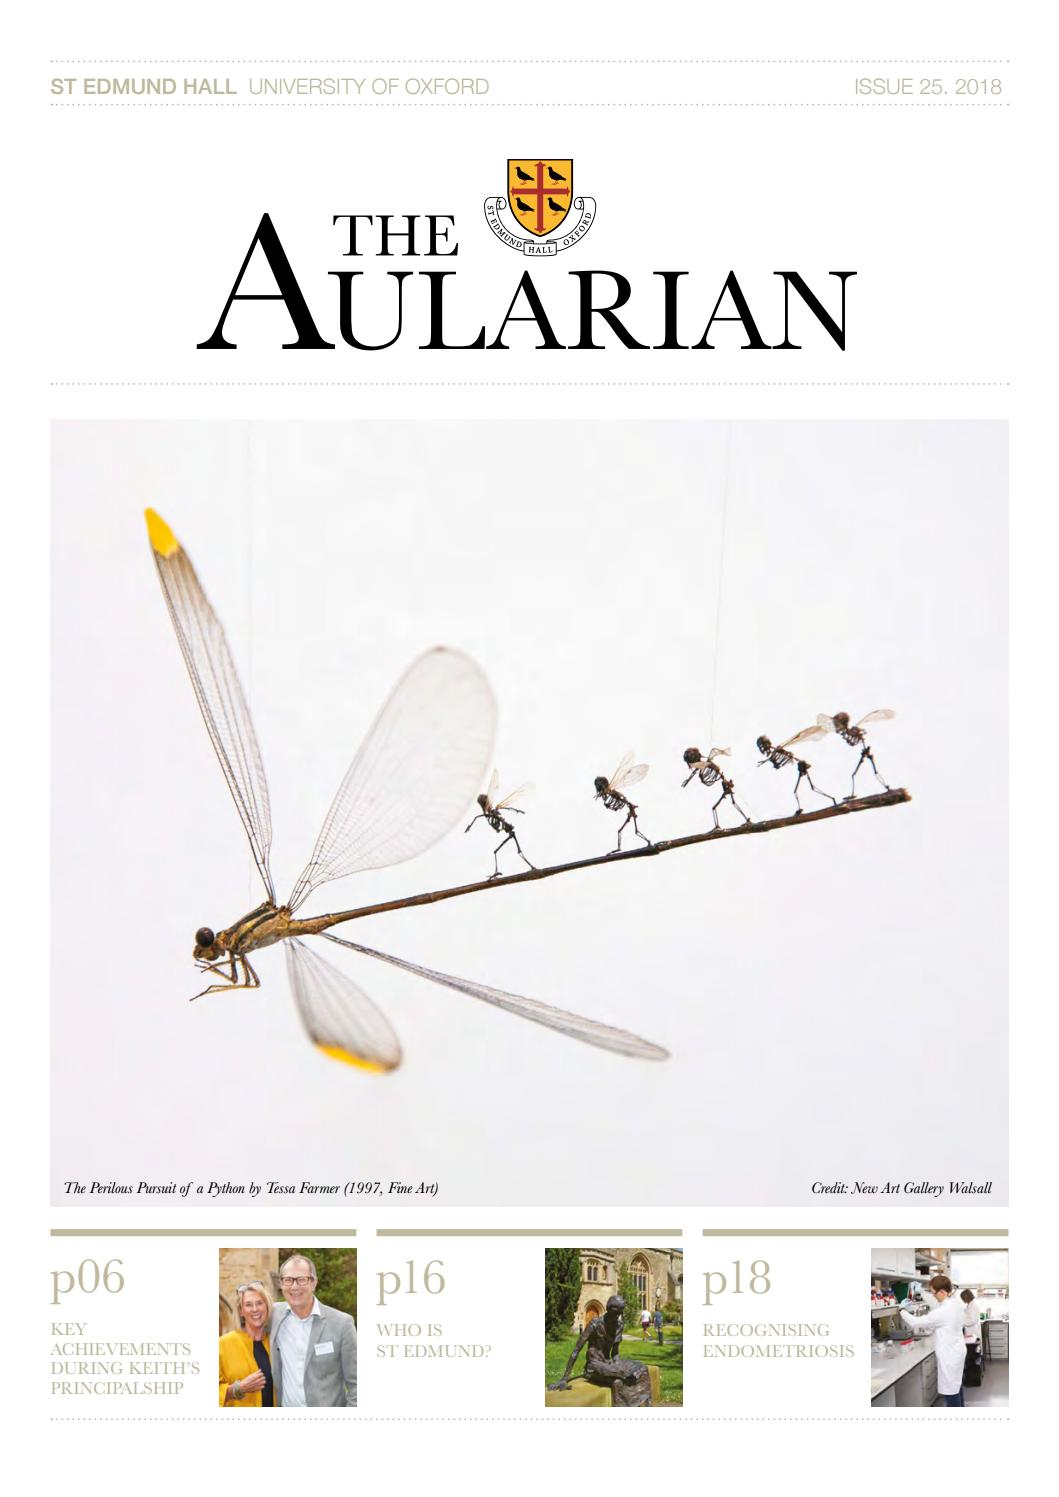 The Aularian, Issue 25, 2018 by St Edmund Hall - issuu